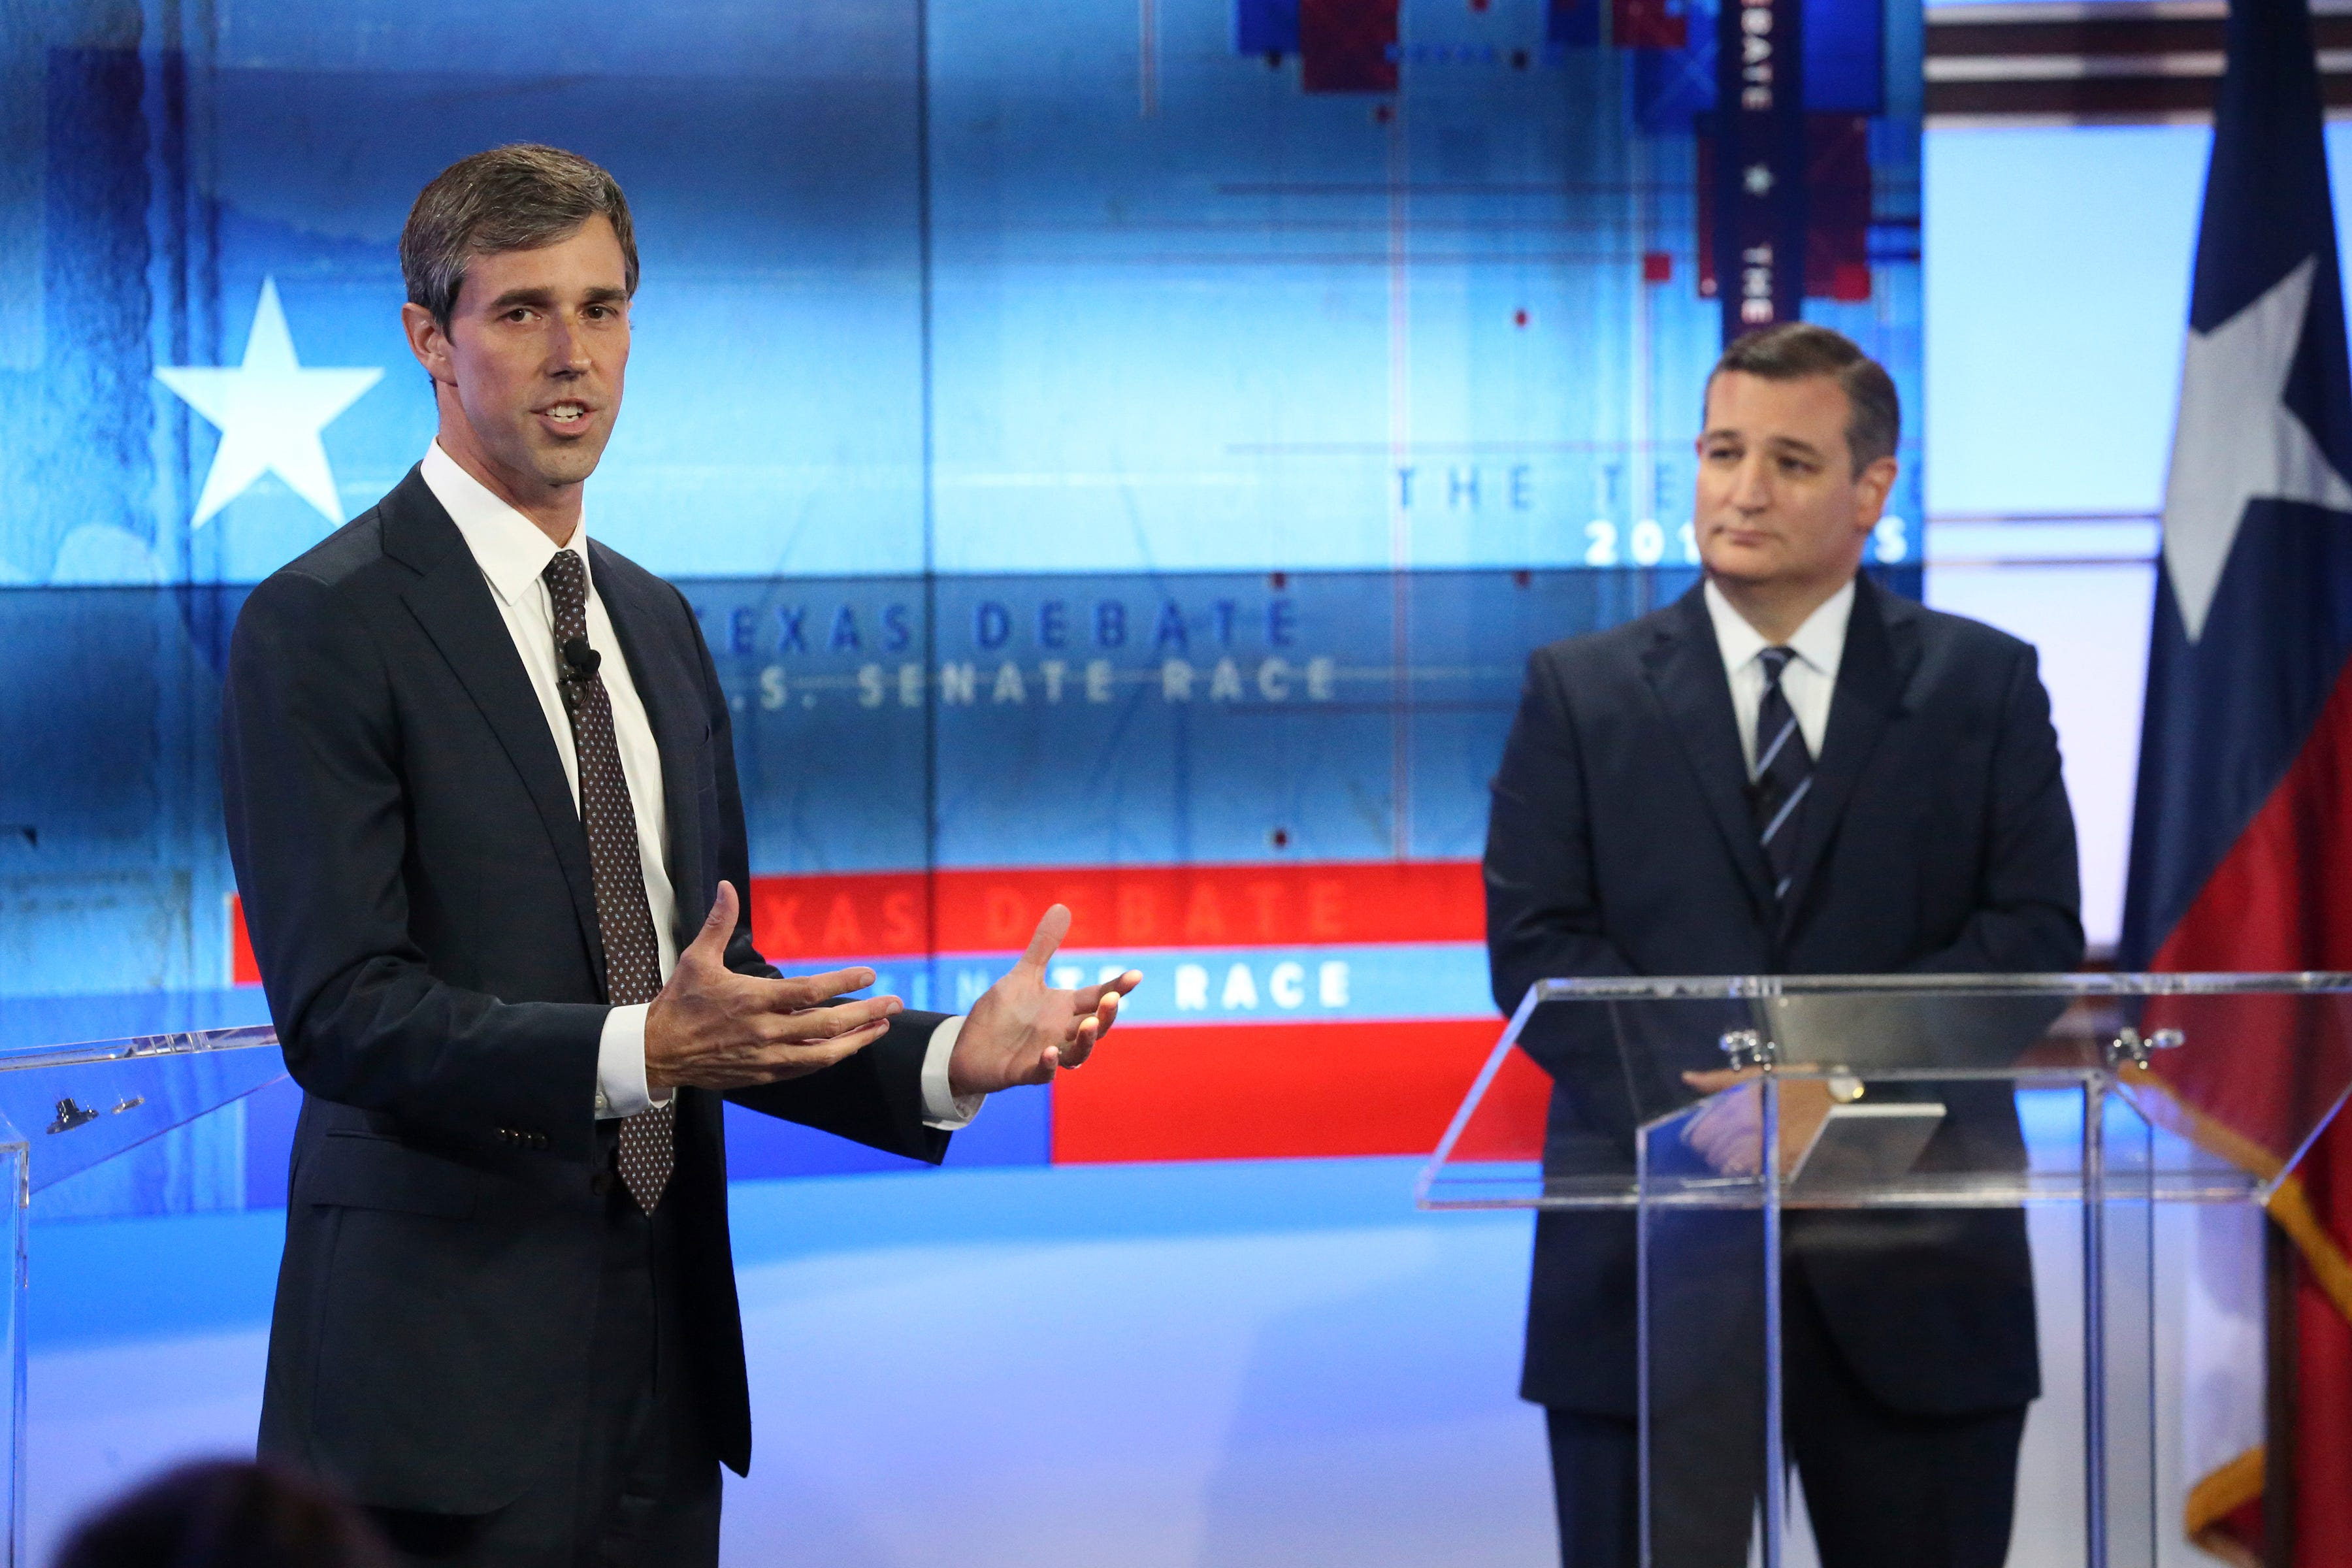 Beto O'Rourke launches aggressive new strategy, ads in Texas Senate race against Ted Cruz | El Paso Times